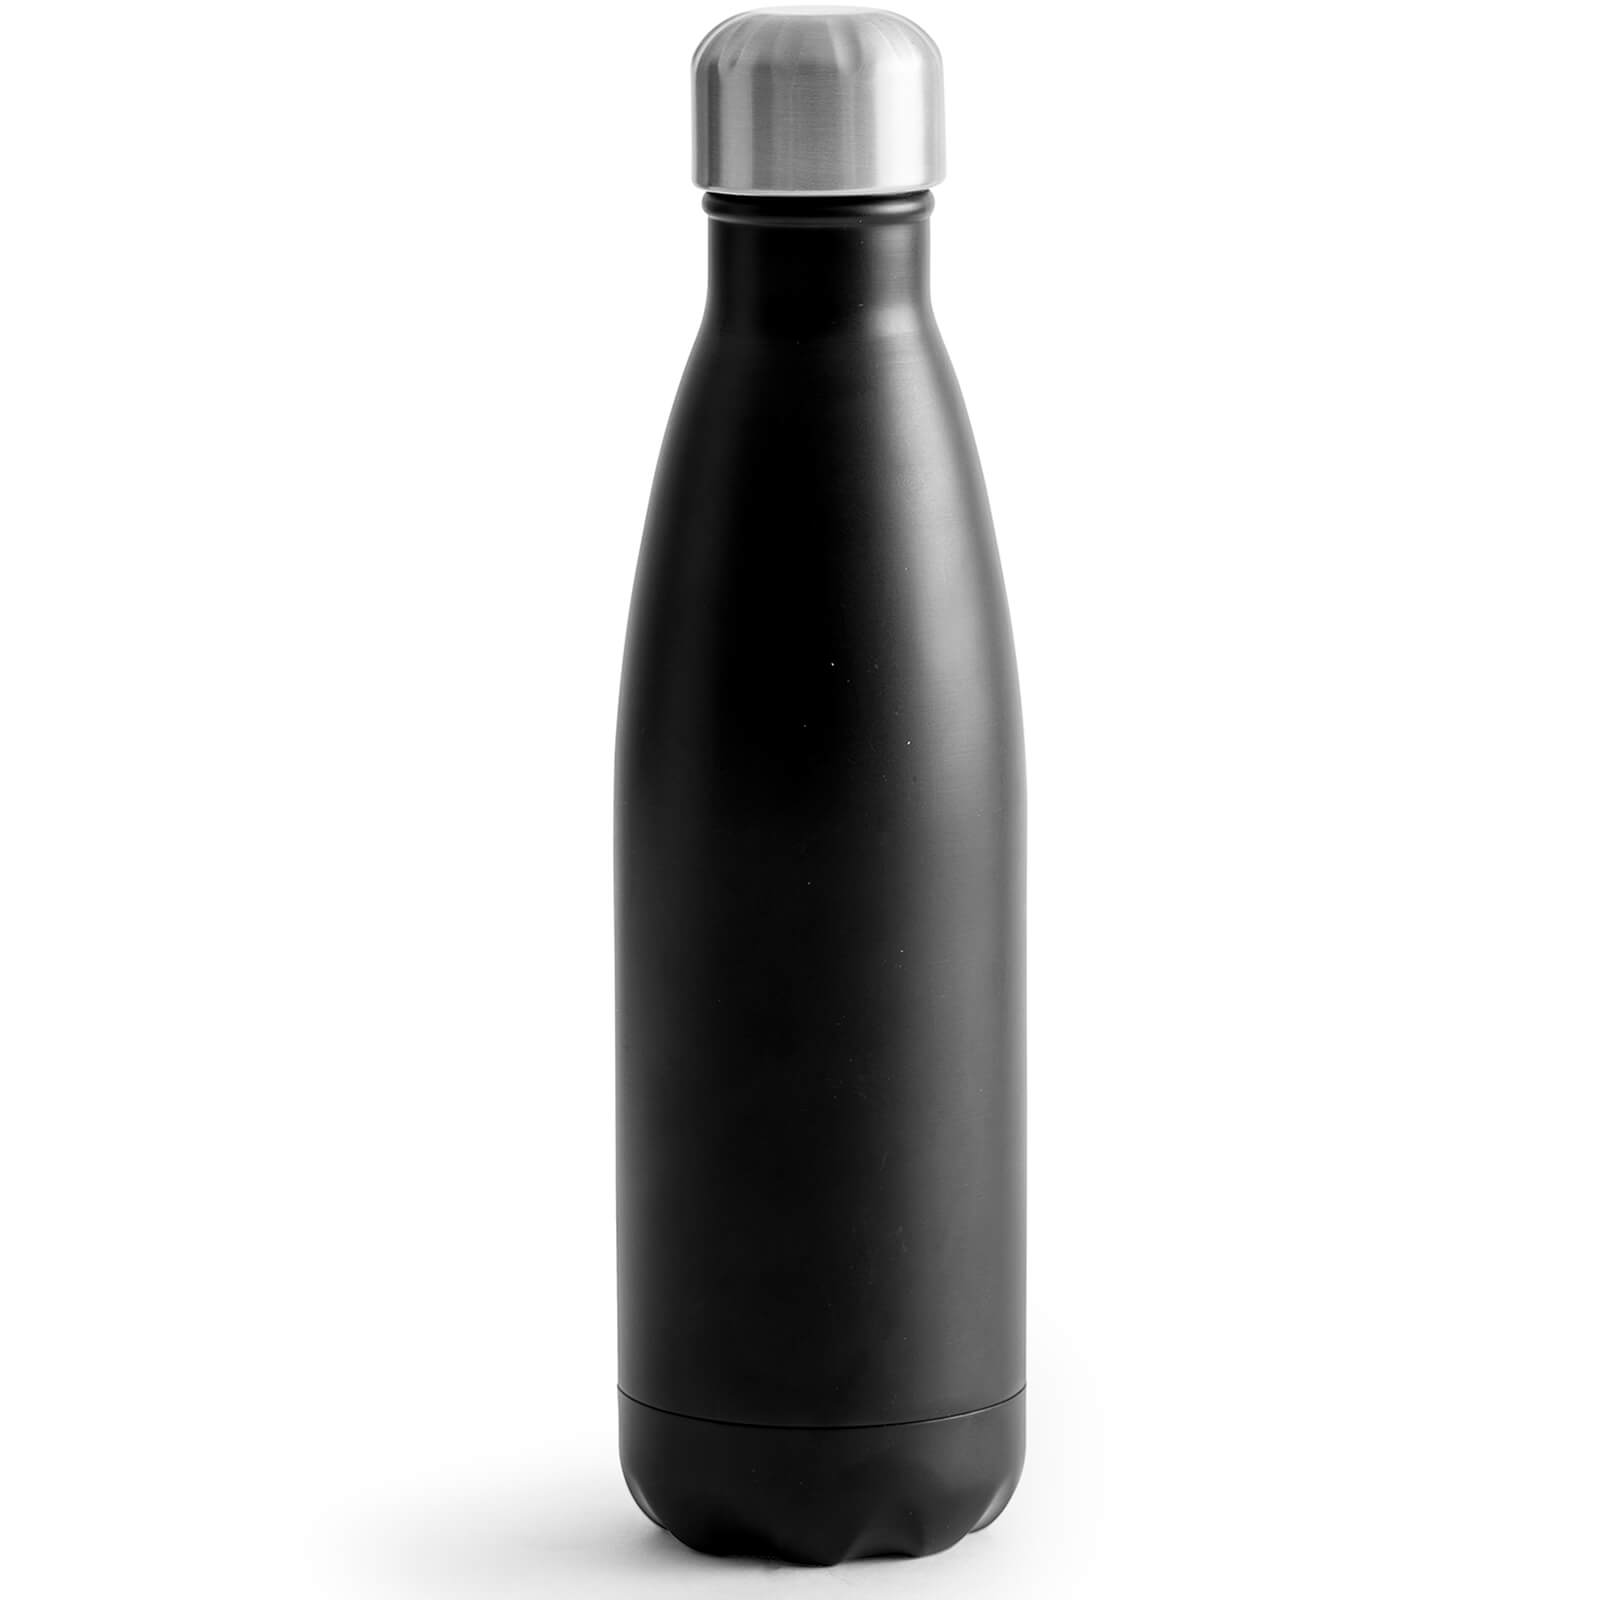 Sagaform Steel Hot and Cold Bottle - Black (50cl)